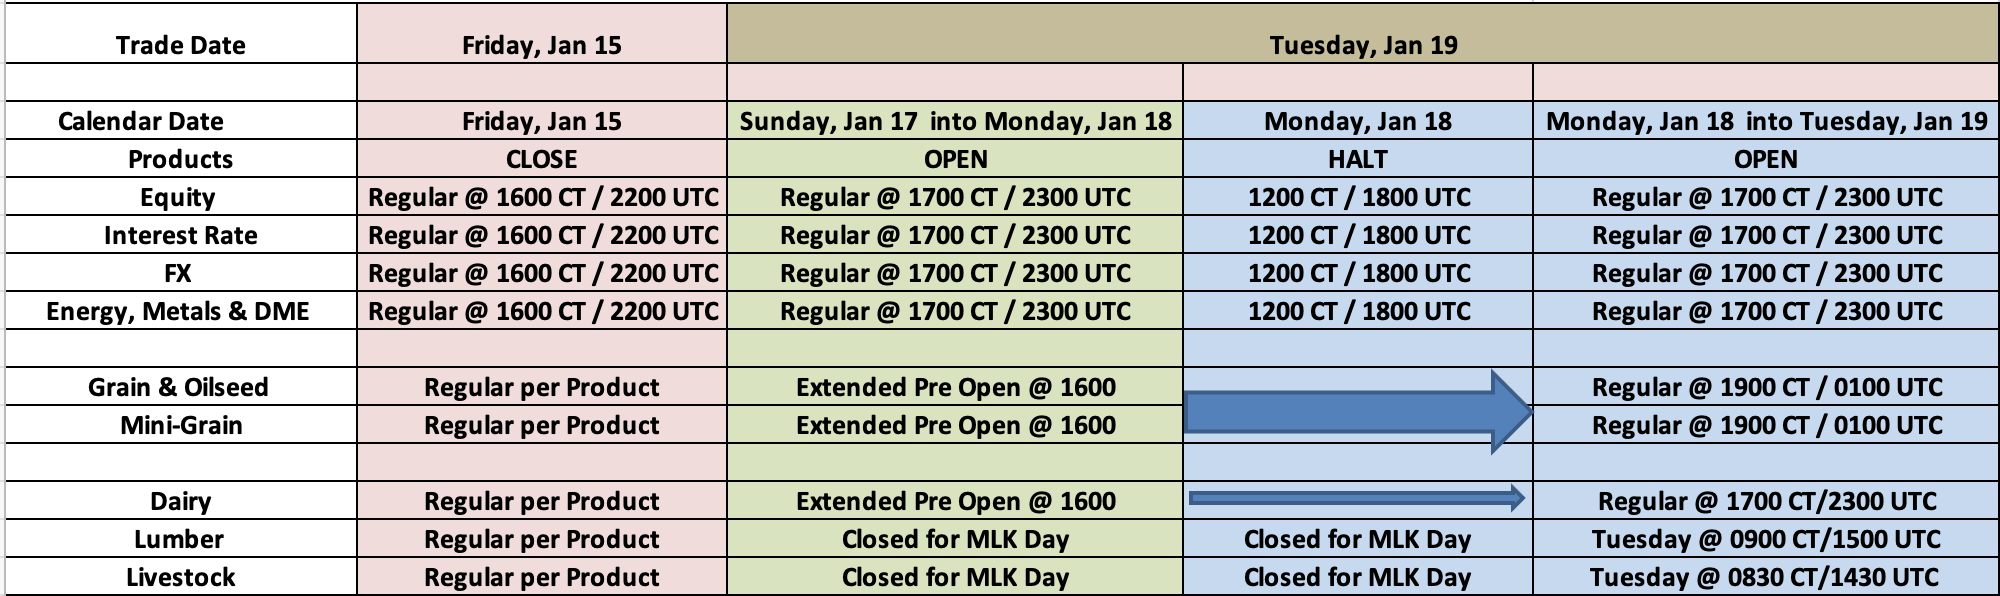 CME Group - Martin Luther King Day Holiday Schedule - January 15 - 19, 2021